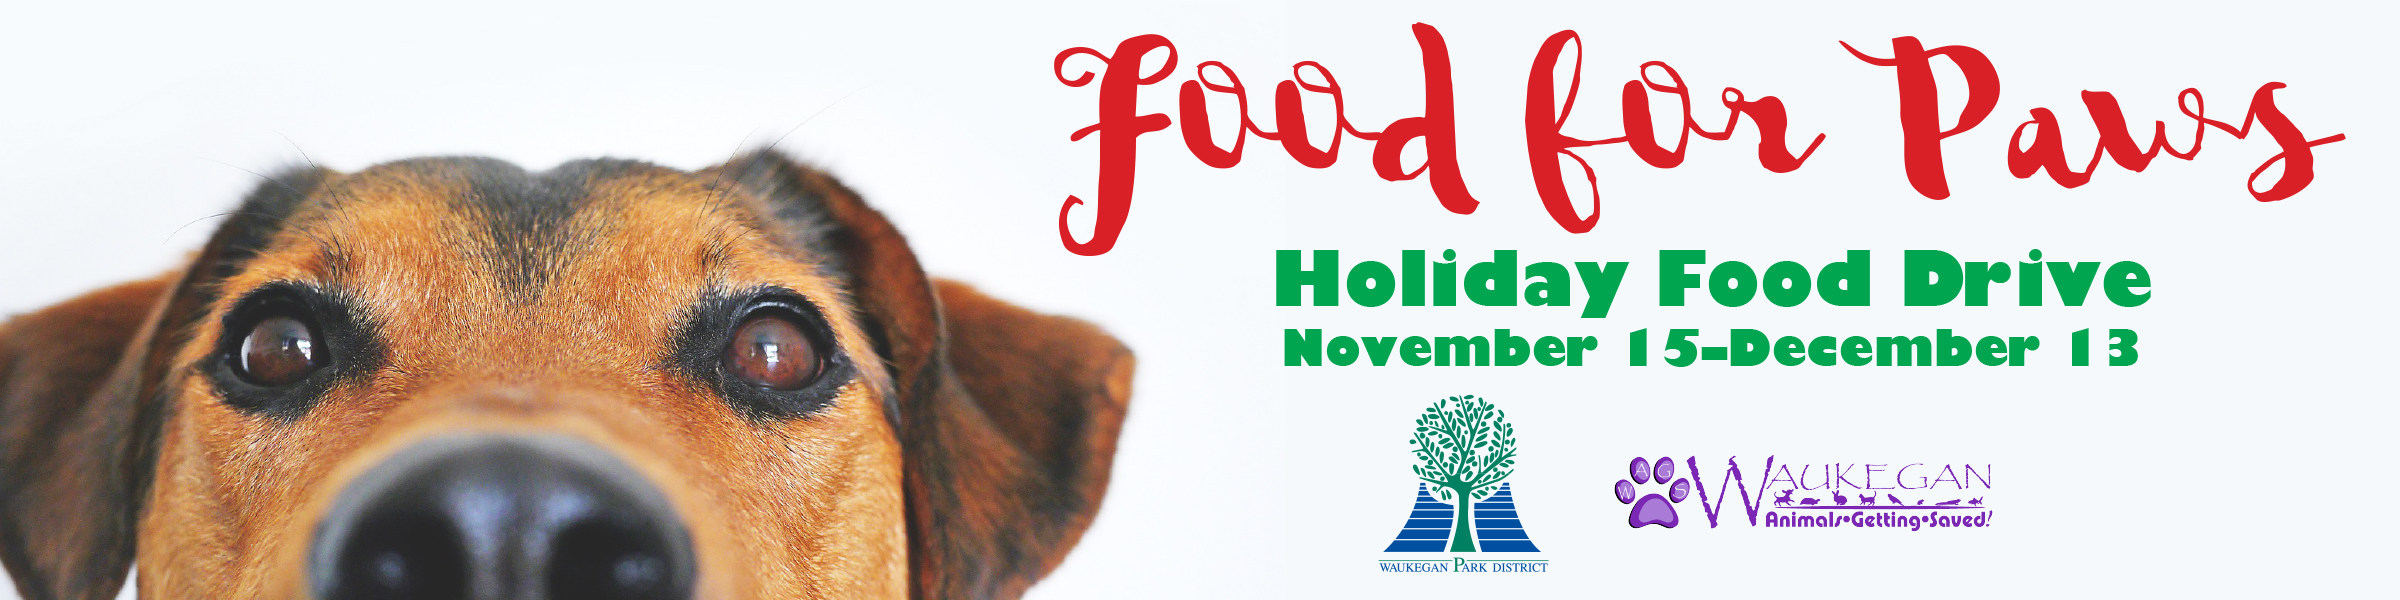 2019 Food for Paws Holiday Food Drive